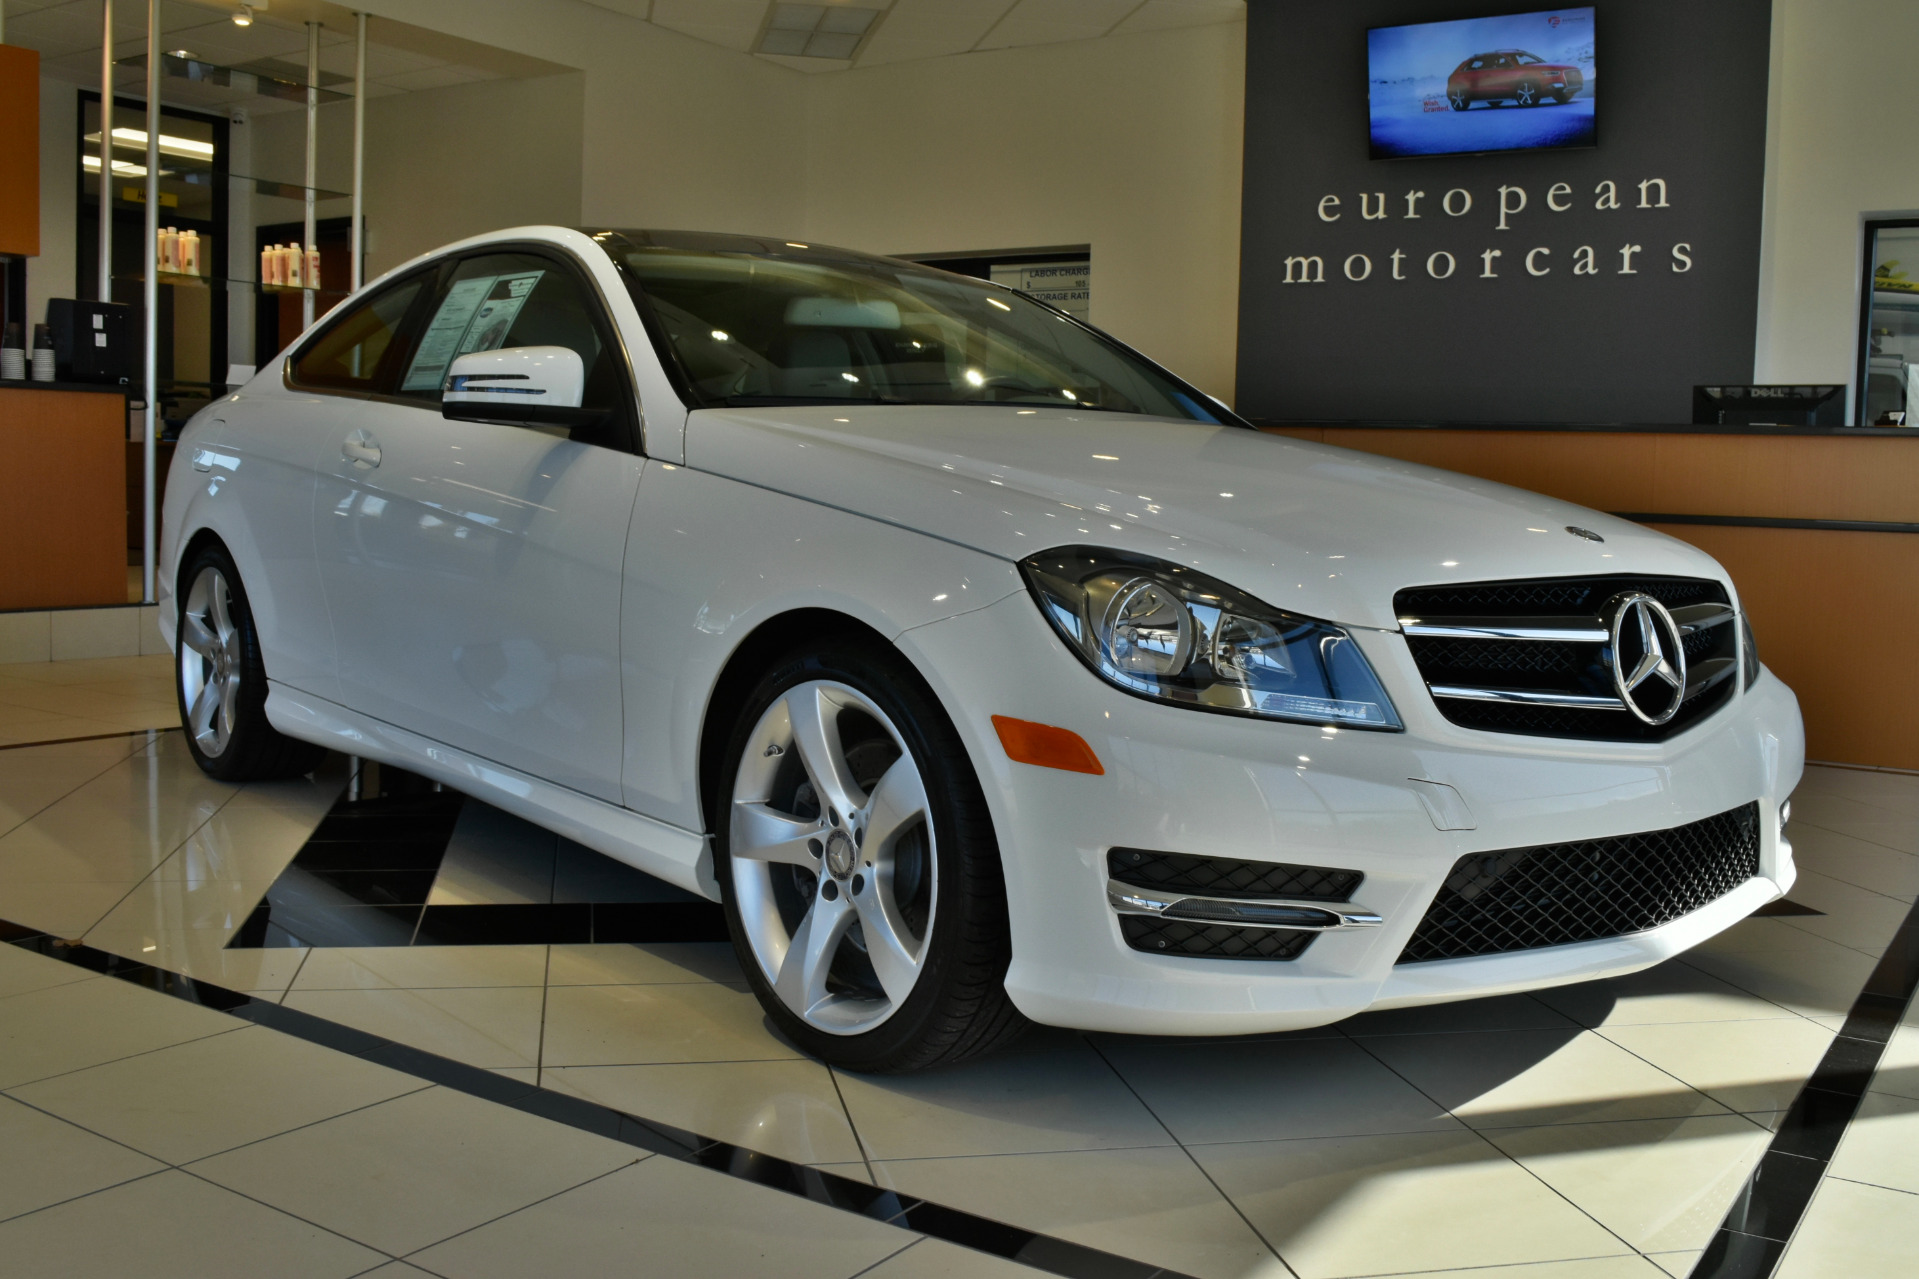 2014 mercedes benz c class c 350 4matic coupe for sale for Euro motorcars mercedes benz